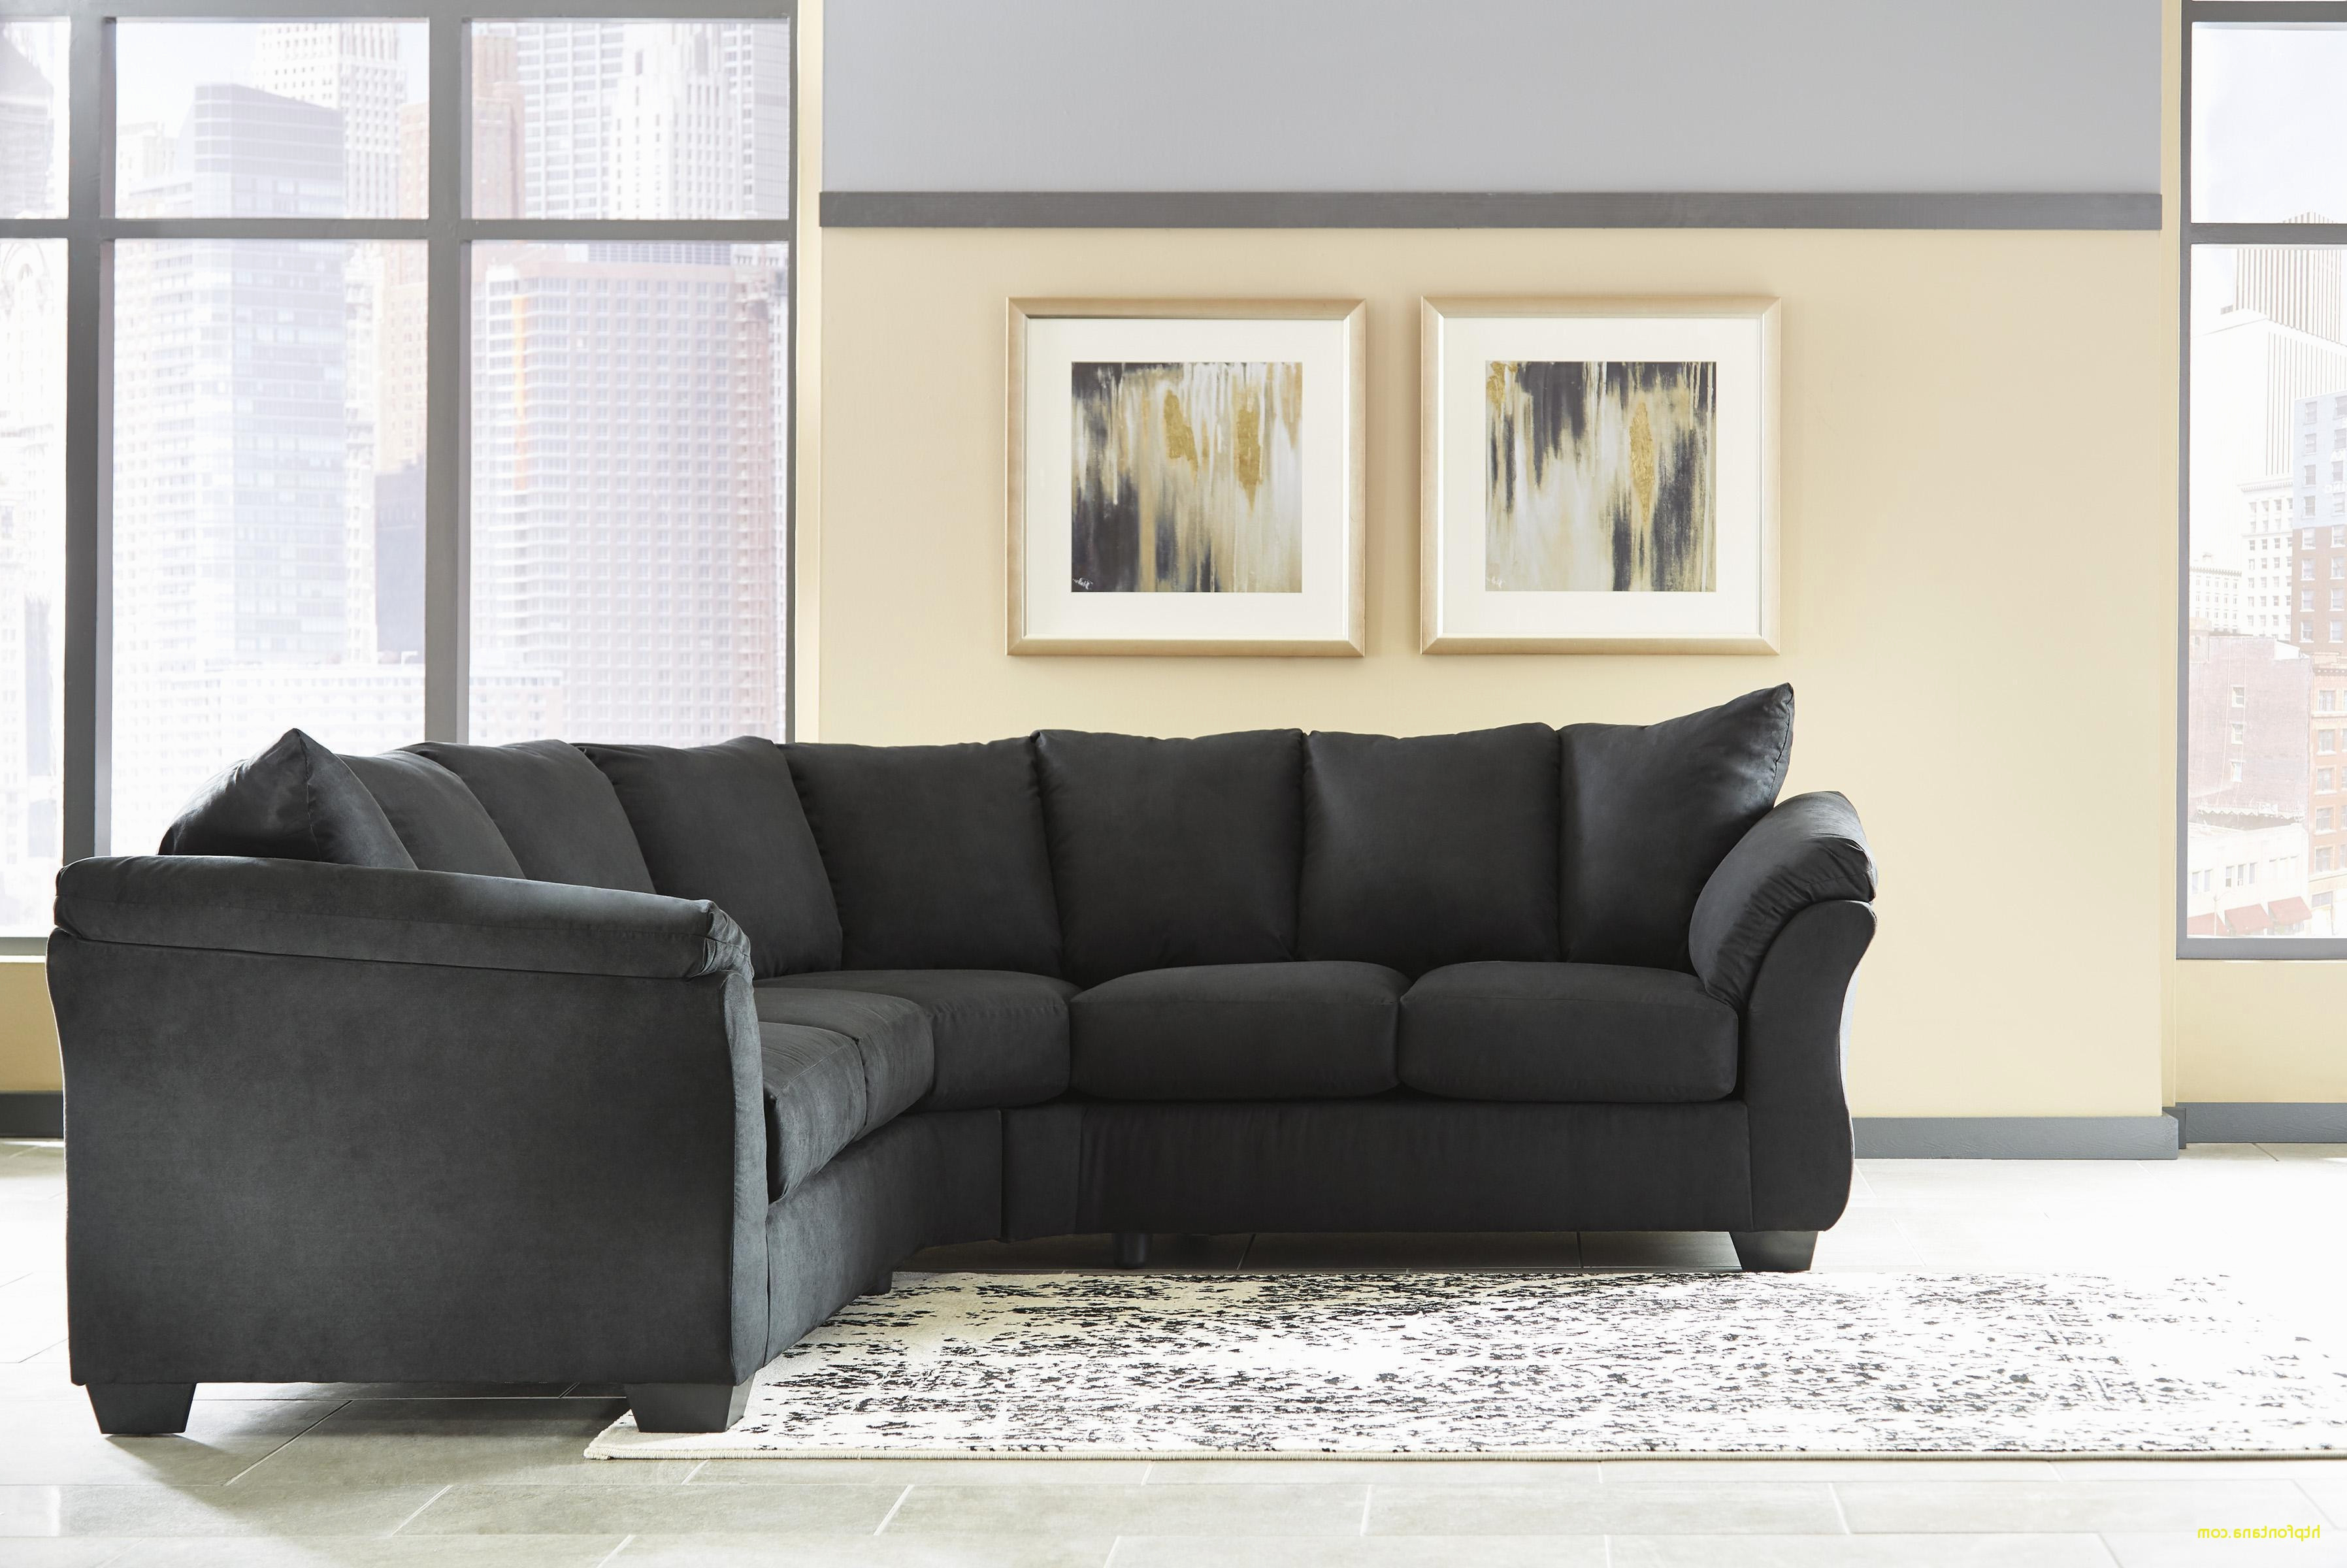 Famous Living Room Sofa With Chaise Elegant Couch Or Sofa Unique Living With Aquarius Light Grey 2 Piece Sectionals With Laf Chaise (View 8 of 20)